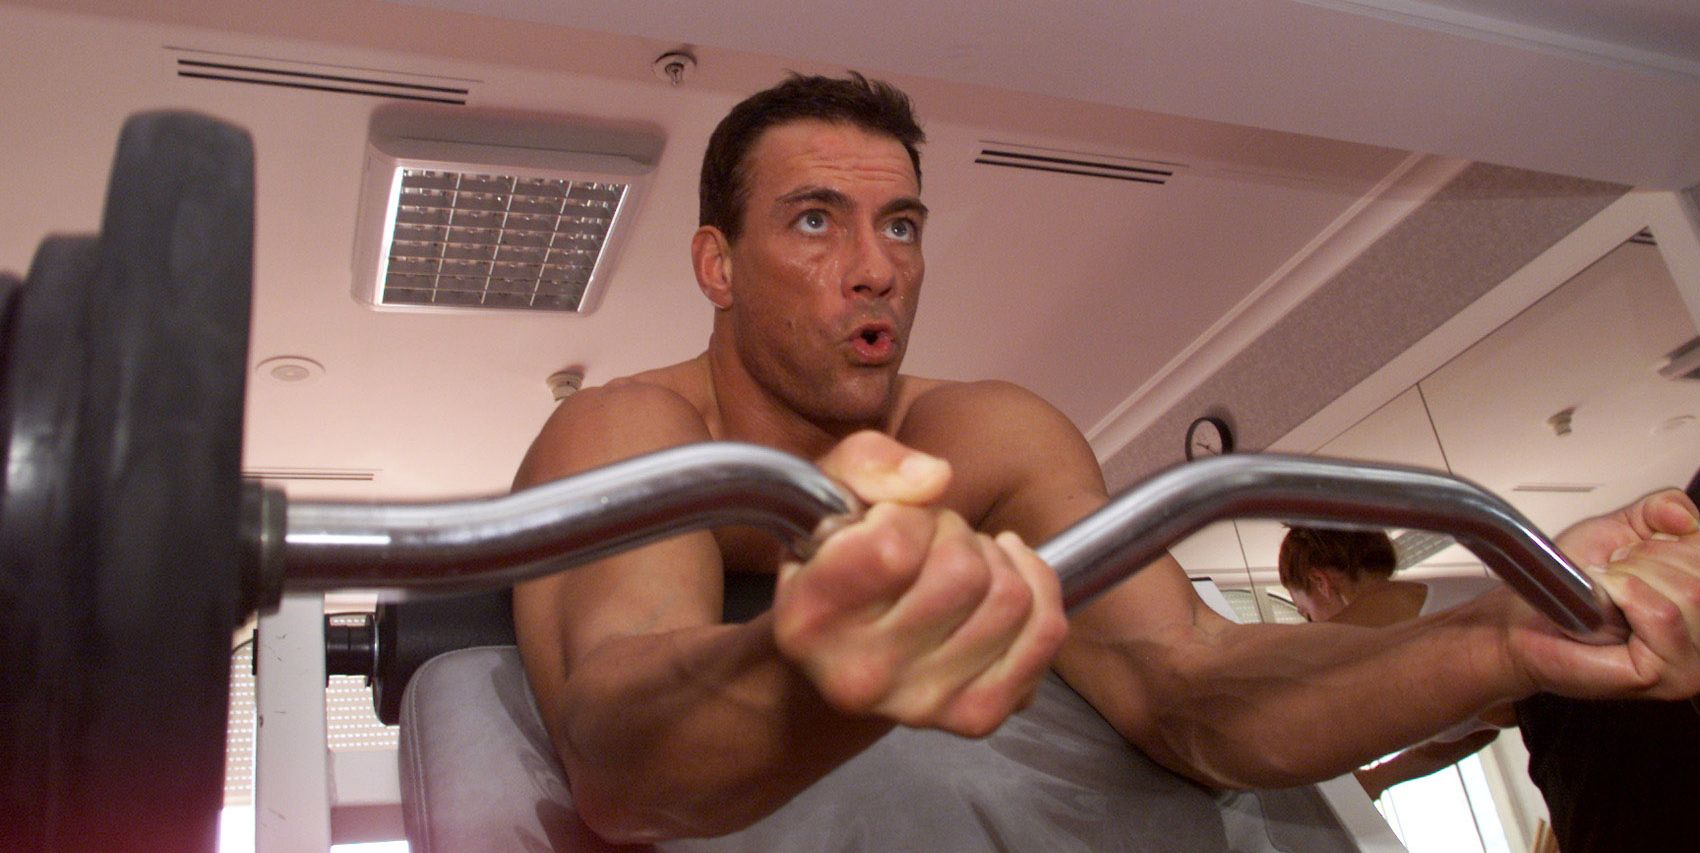 008263.CA.0512.Cannes.12.AS Cannes France. Actor Jean–Claude Van Damme works out with L.A. Times wri